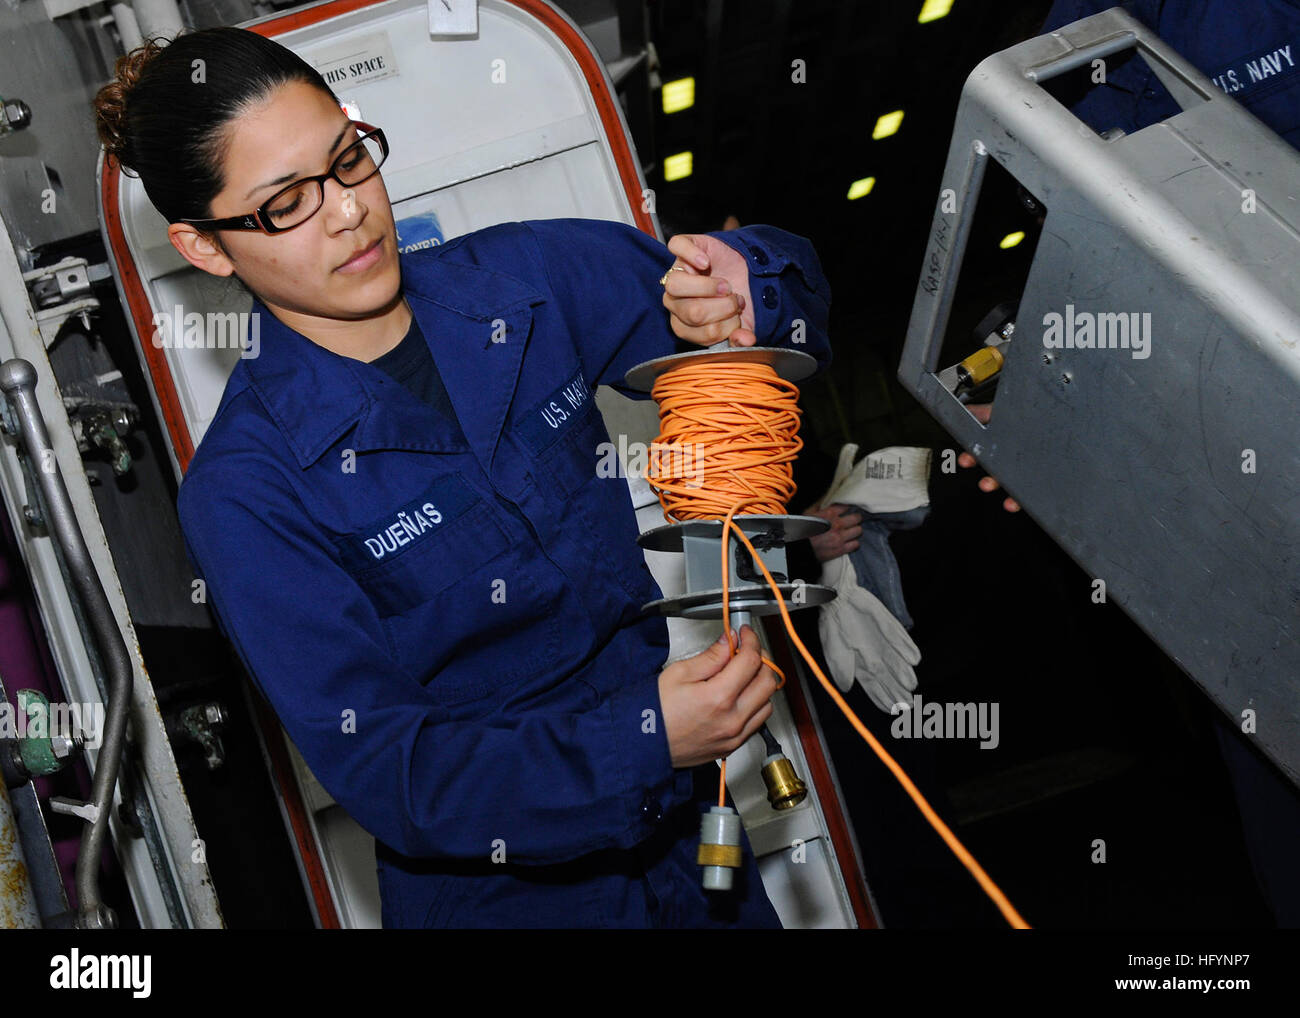 110405-N-3154P-155  MEDITERRANEAN SEA (April 5, 2011) Damage Controlman Fireman Vanessa Duenas unrolls cable for - Stock Image